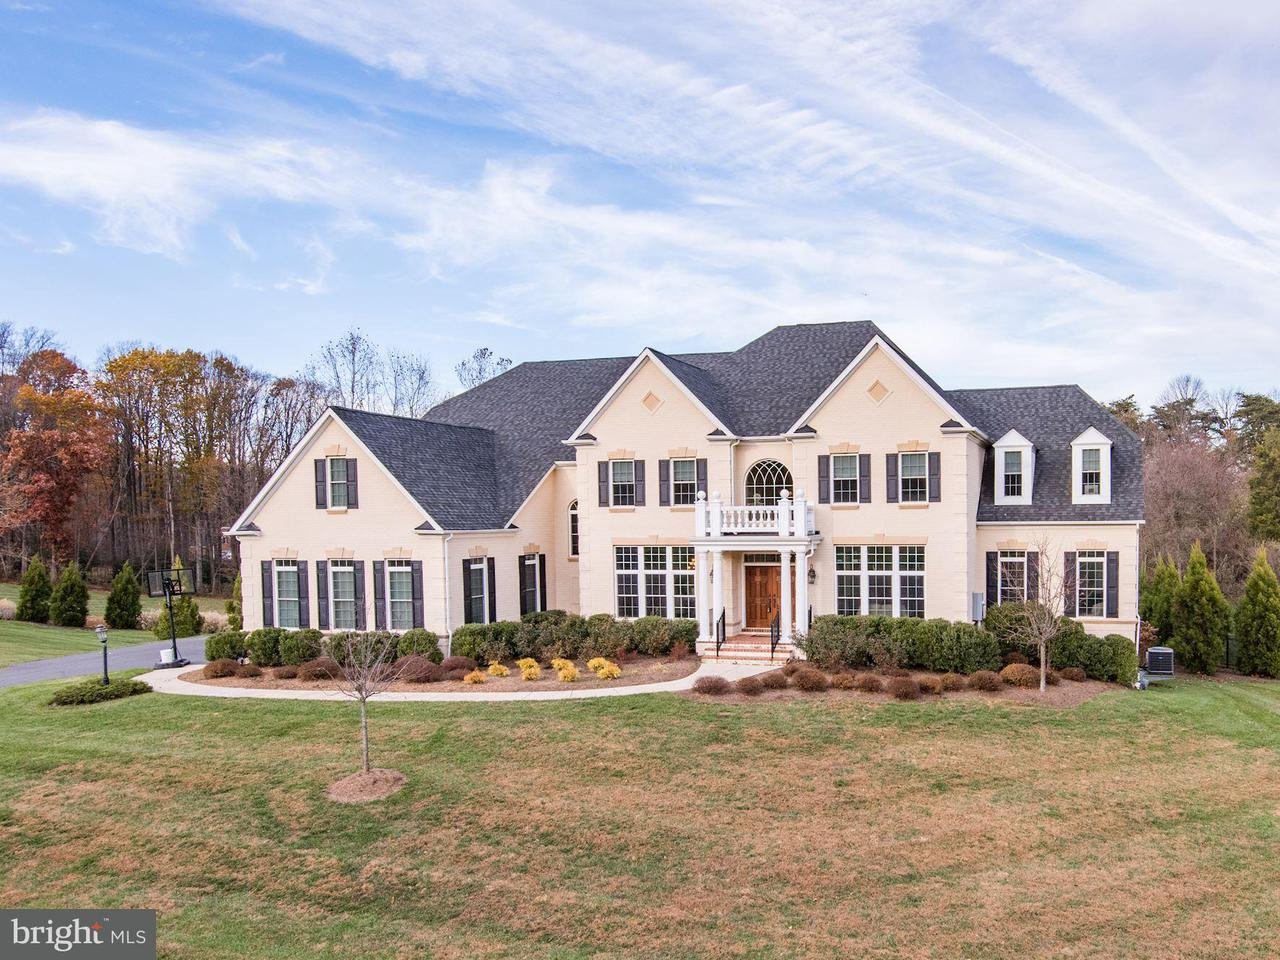 Single Family Home for Sale at 1679 HUNTING CREST WAY 1679 HUNTING CREST WAY Vienna, Virginia 22182 United States